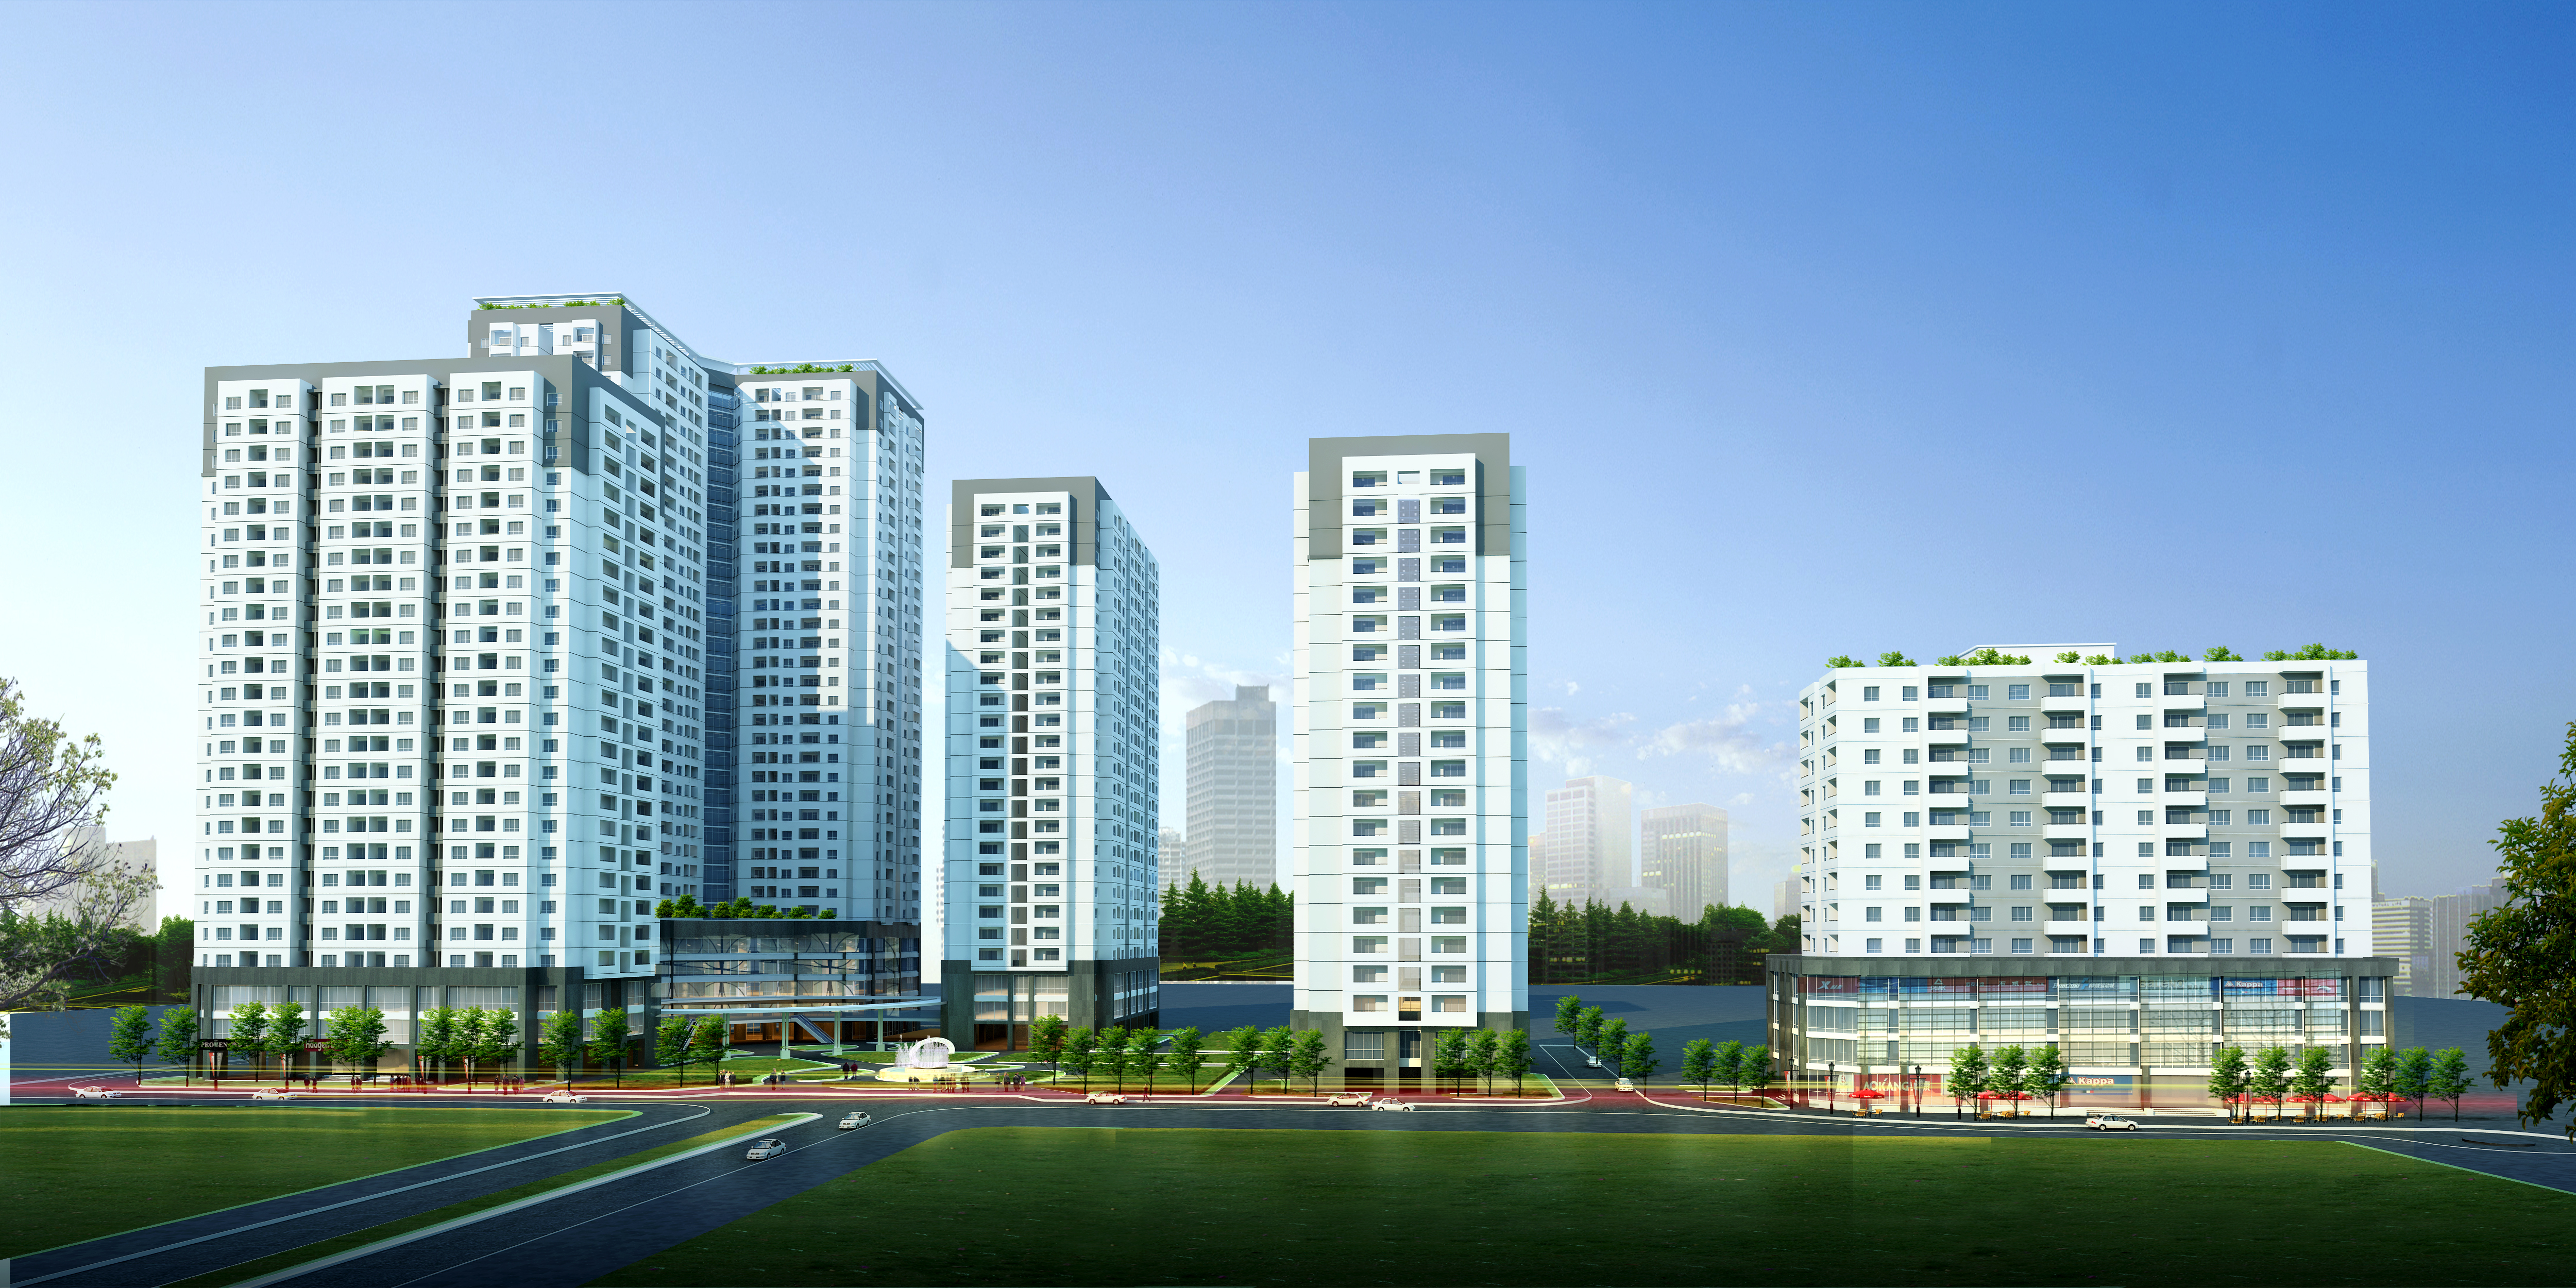 Detailed High Rise Building Complex 3d Model 3d Model Max Dxf